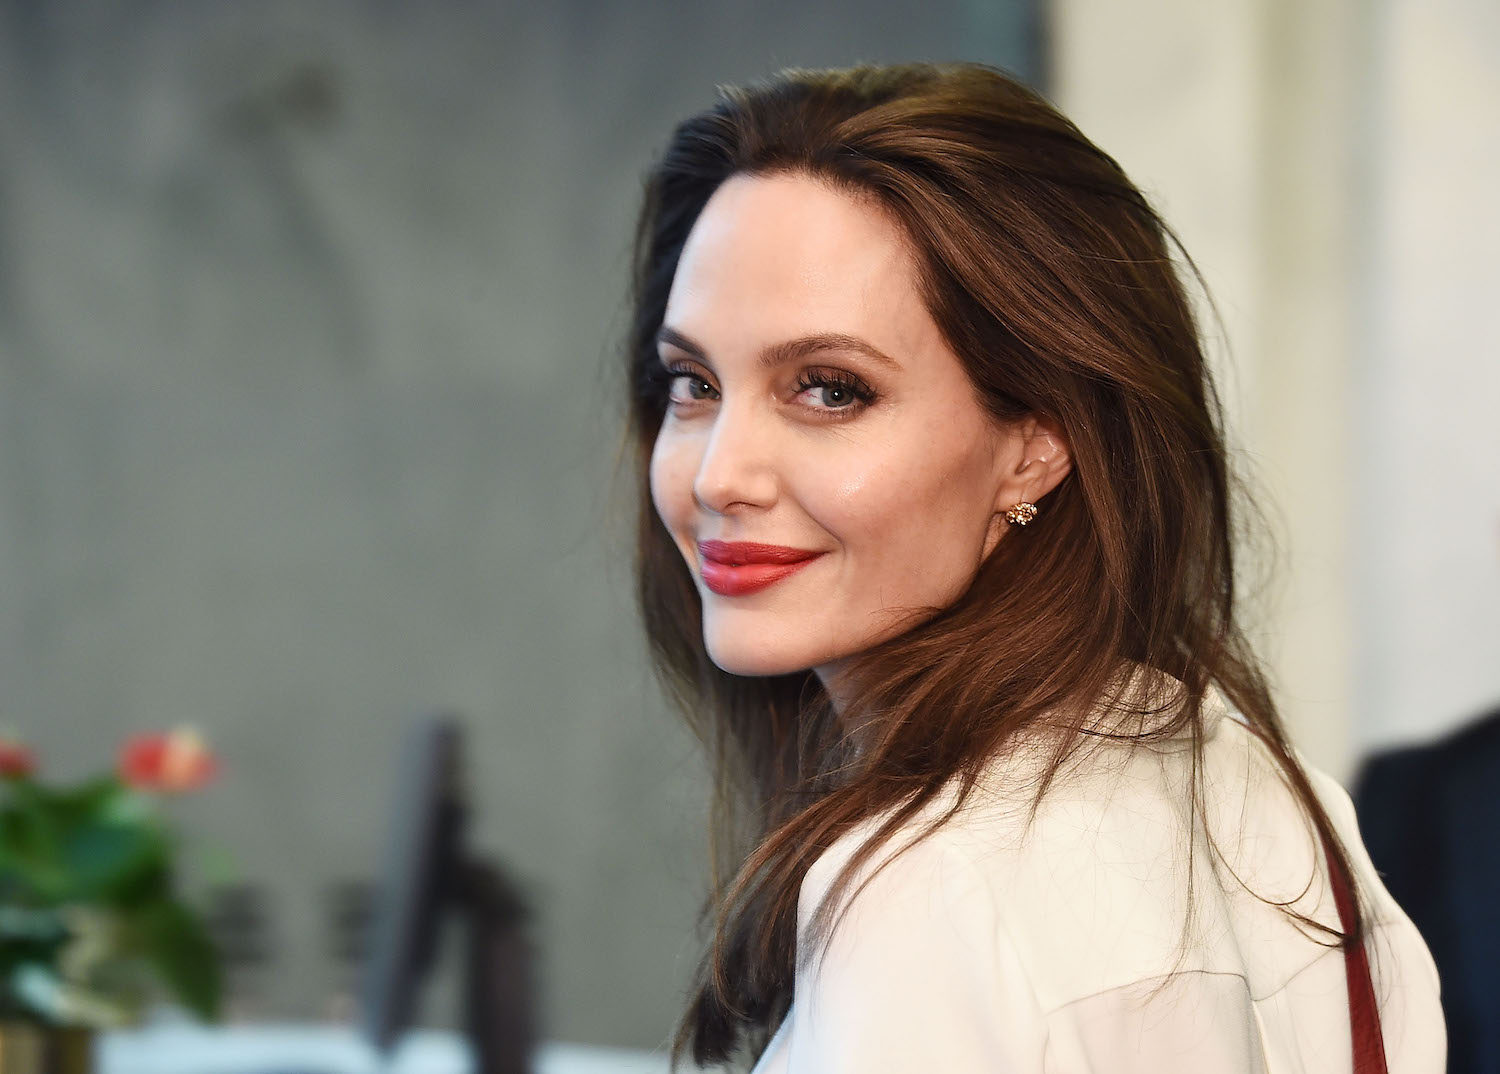 Angelina Jolie S Dermatologist Reveals Her Skincare Routine Marie Claire Australia